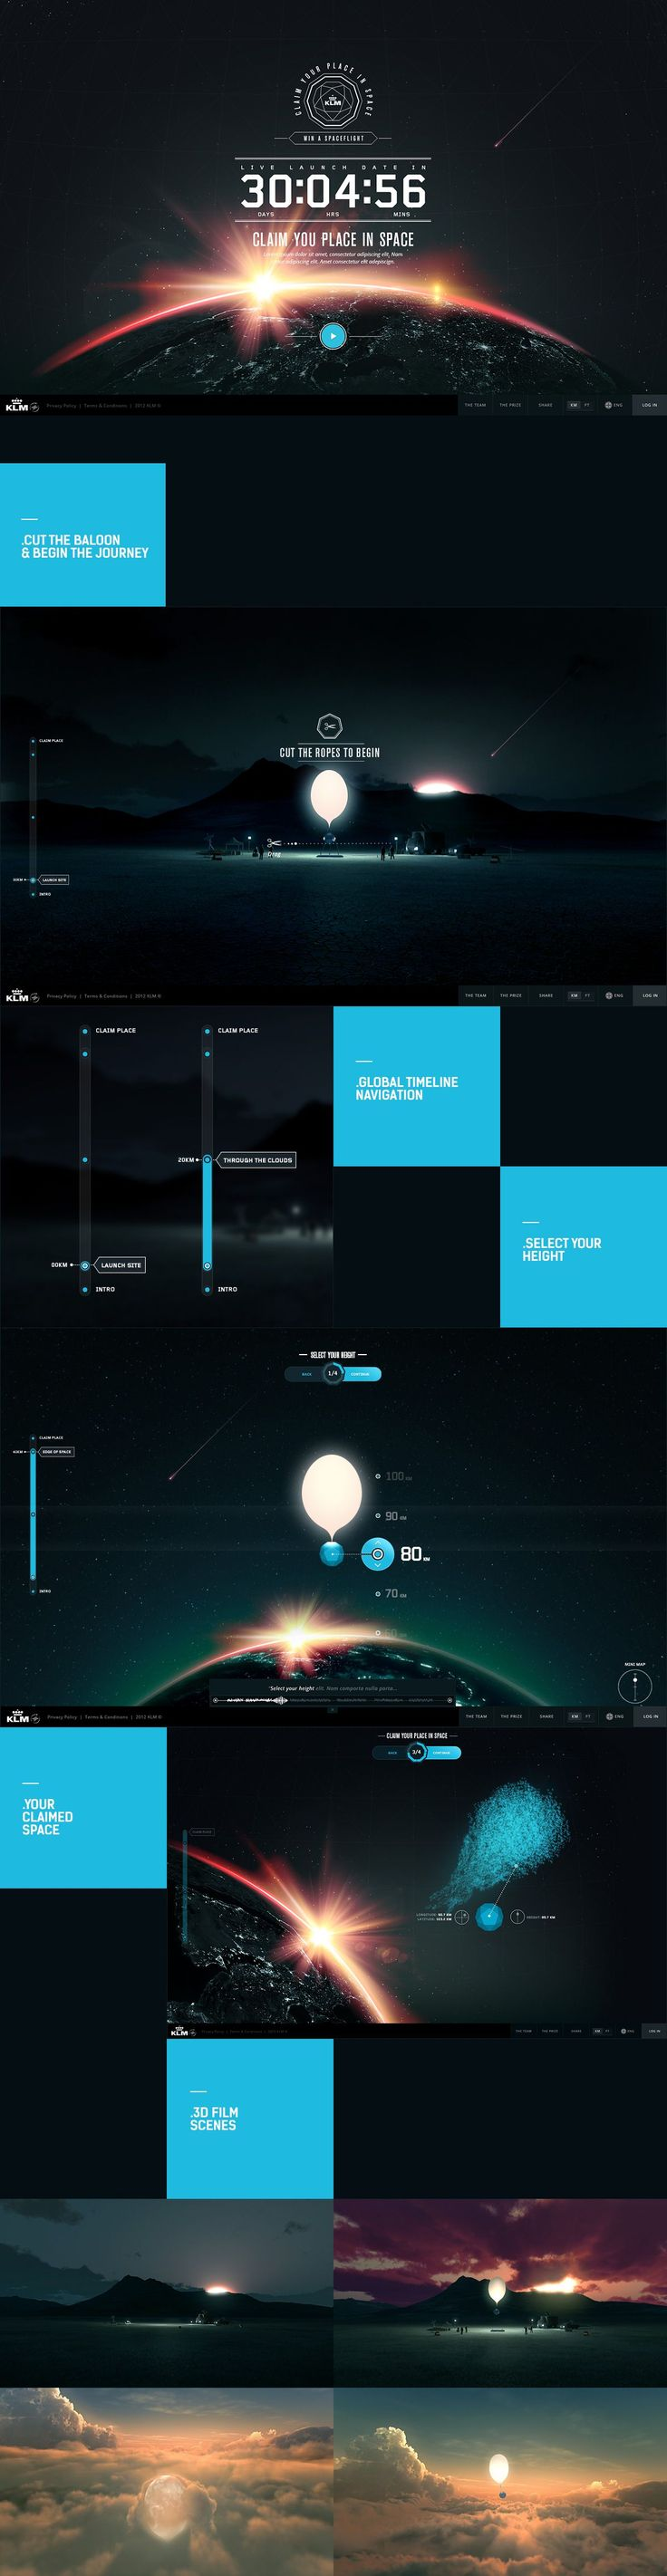 KLM Space -- space, countdown, visual, timeline